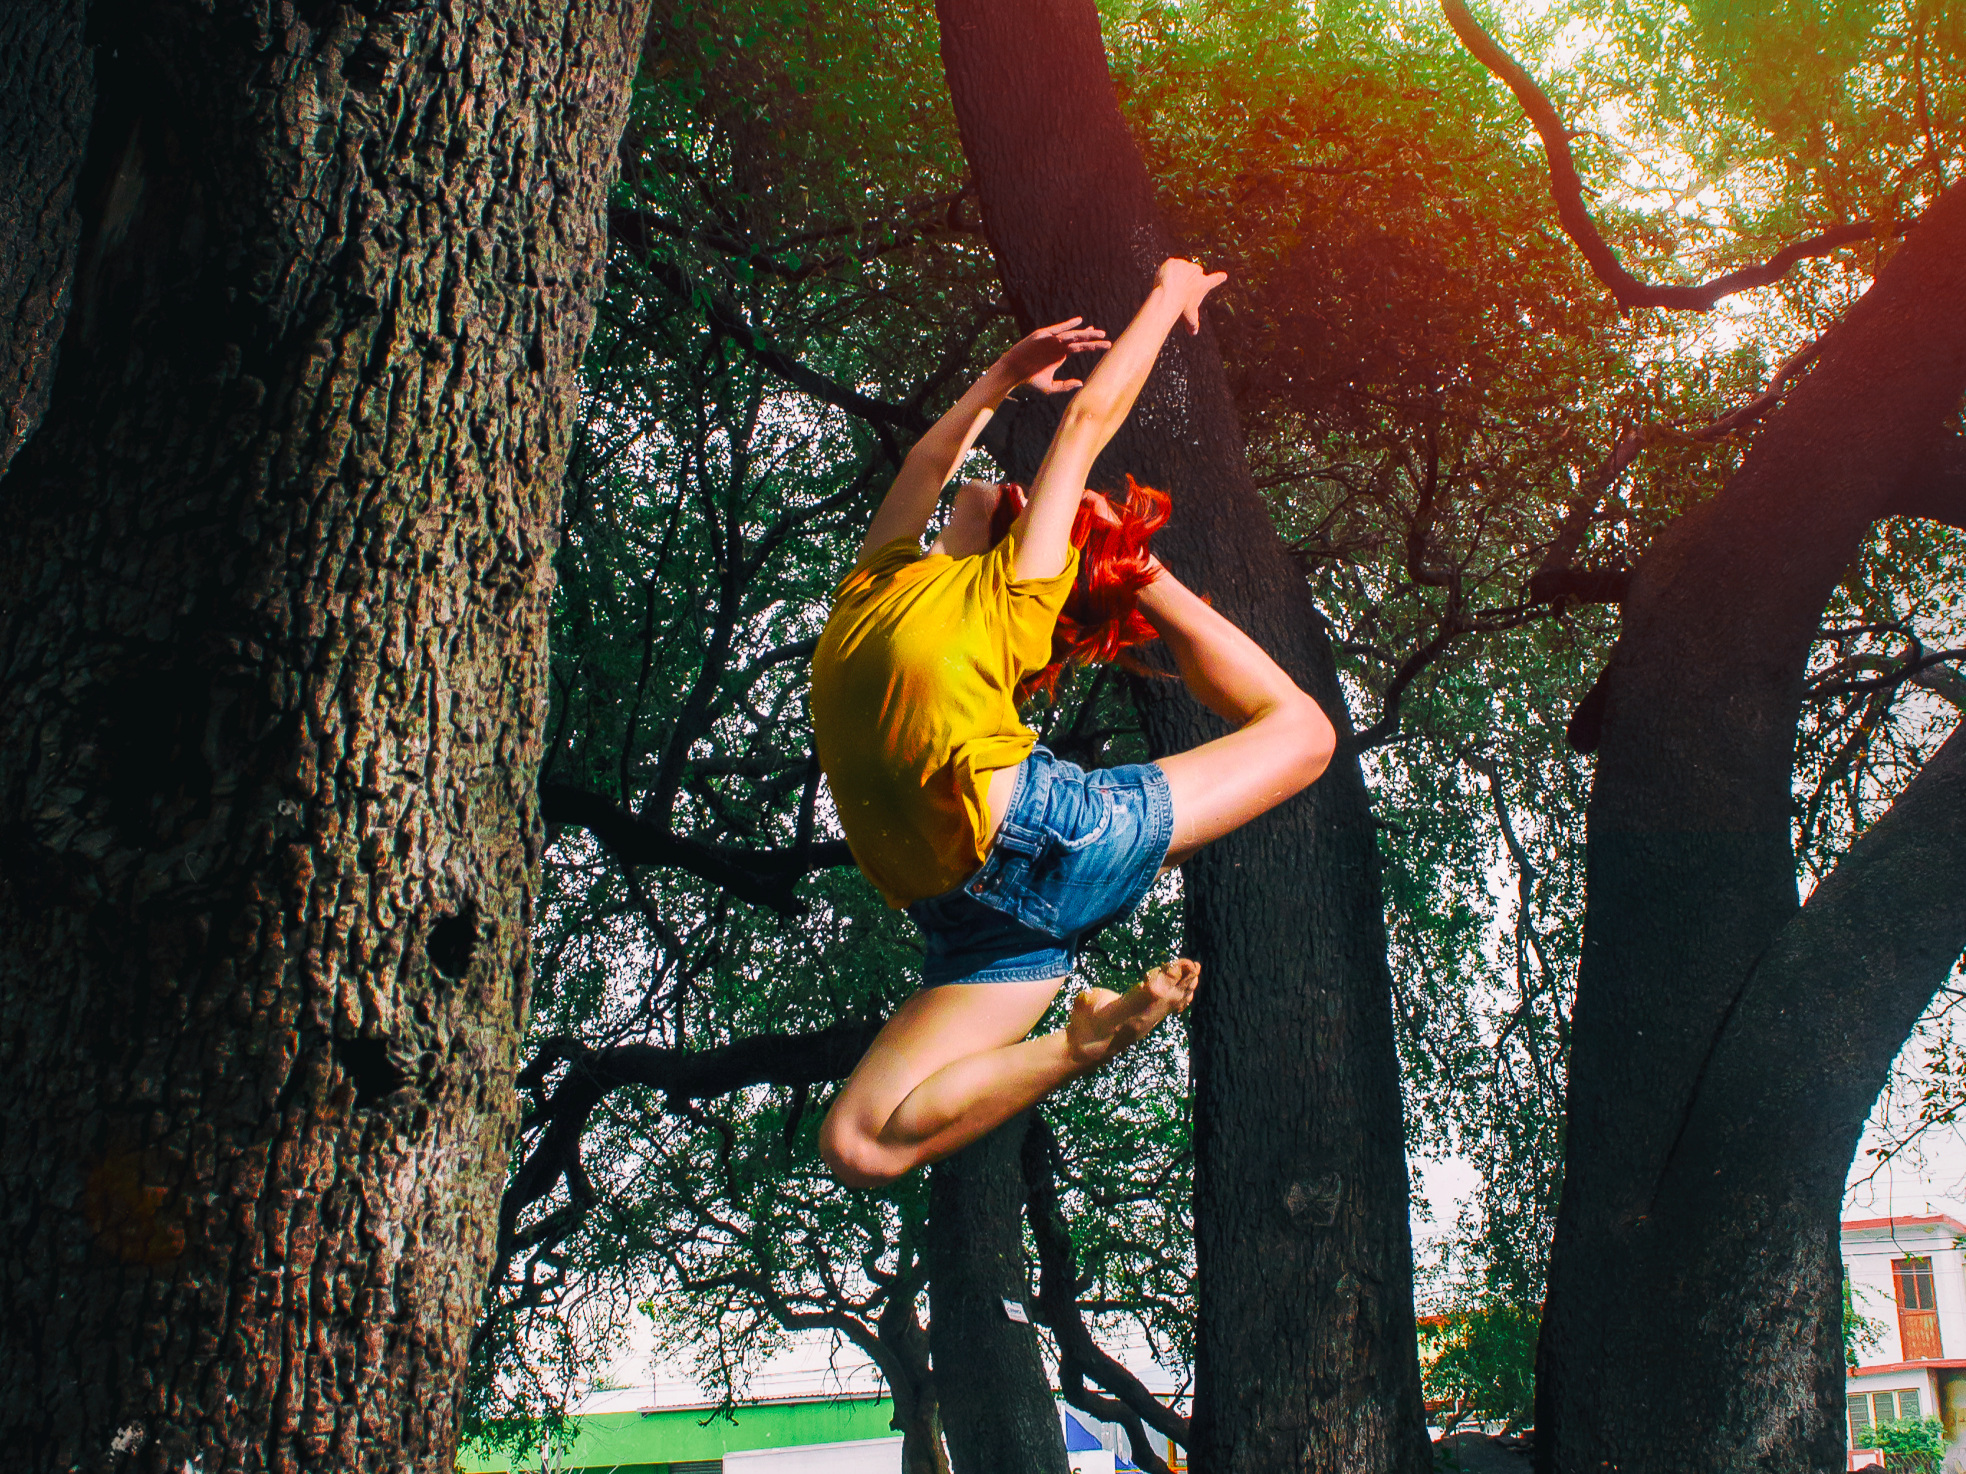 Woman+Jumping+Woods.jpg